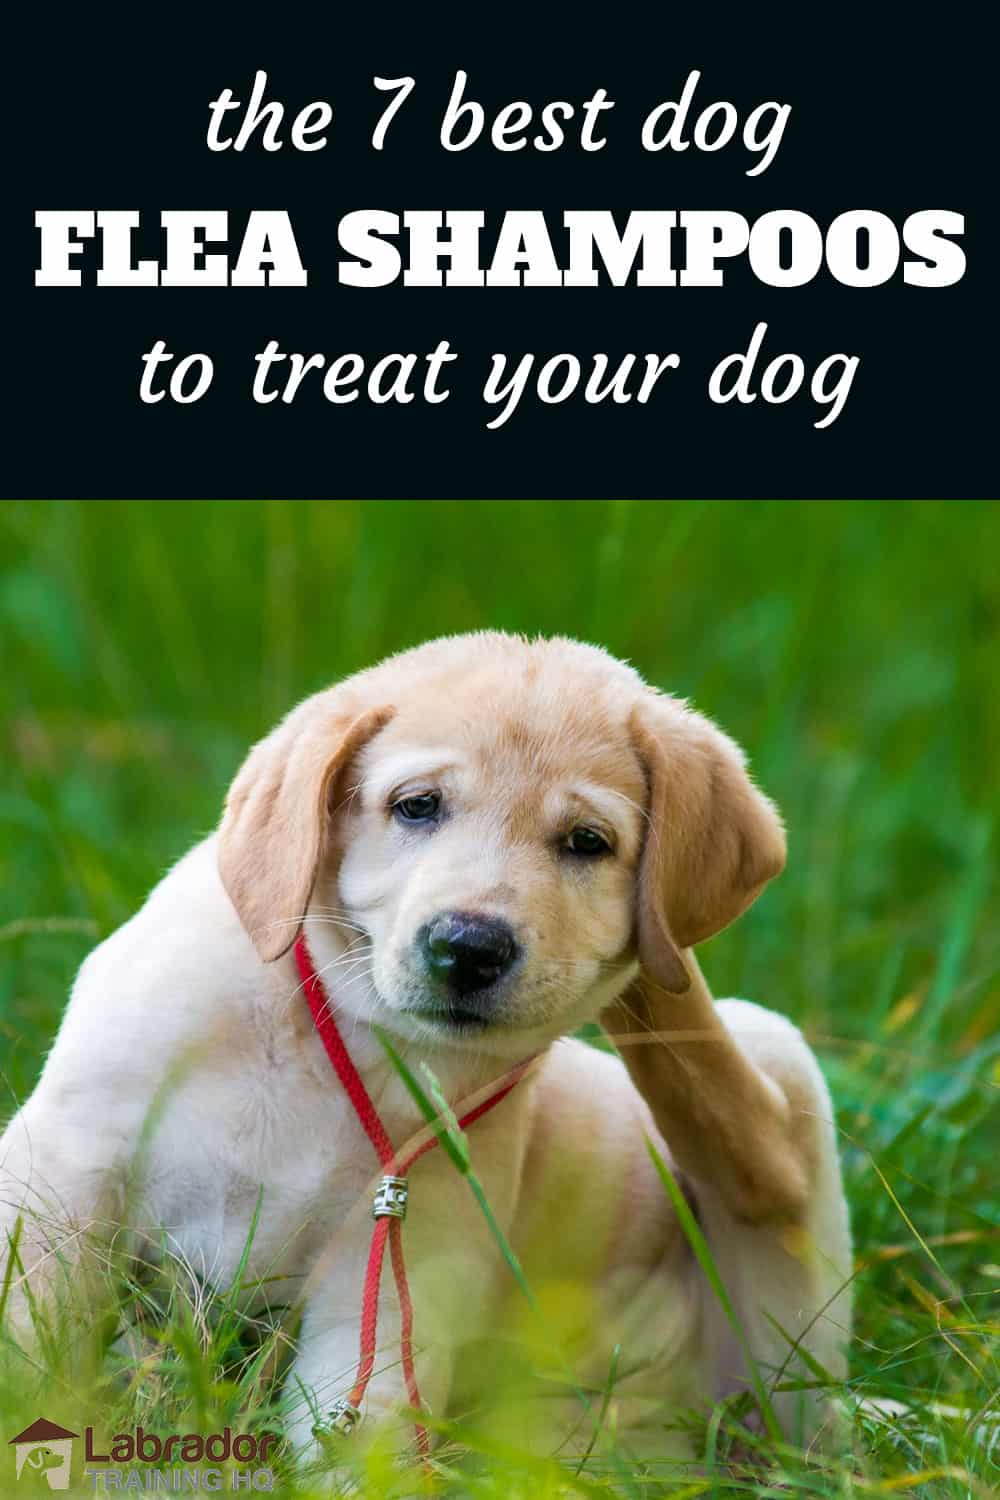 Best Flea Shampoos For Dogs - Yellow Labrador Retriever puppy scratching behind his ear.